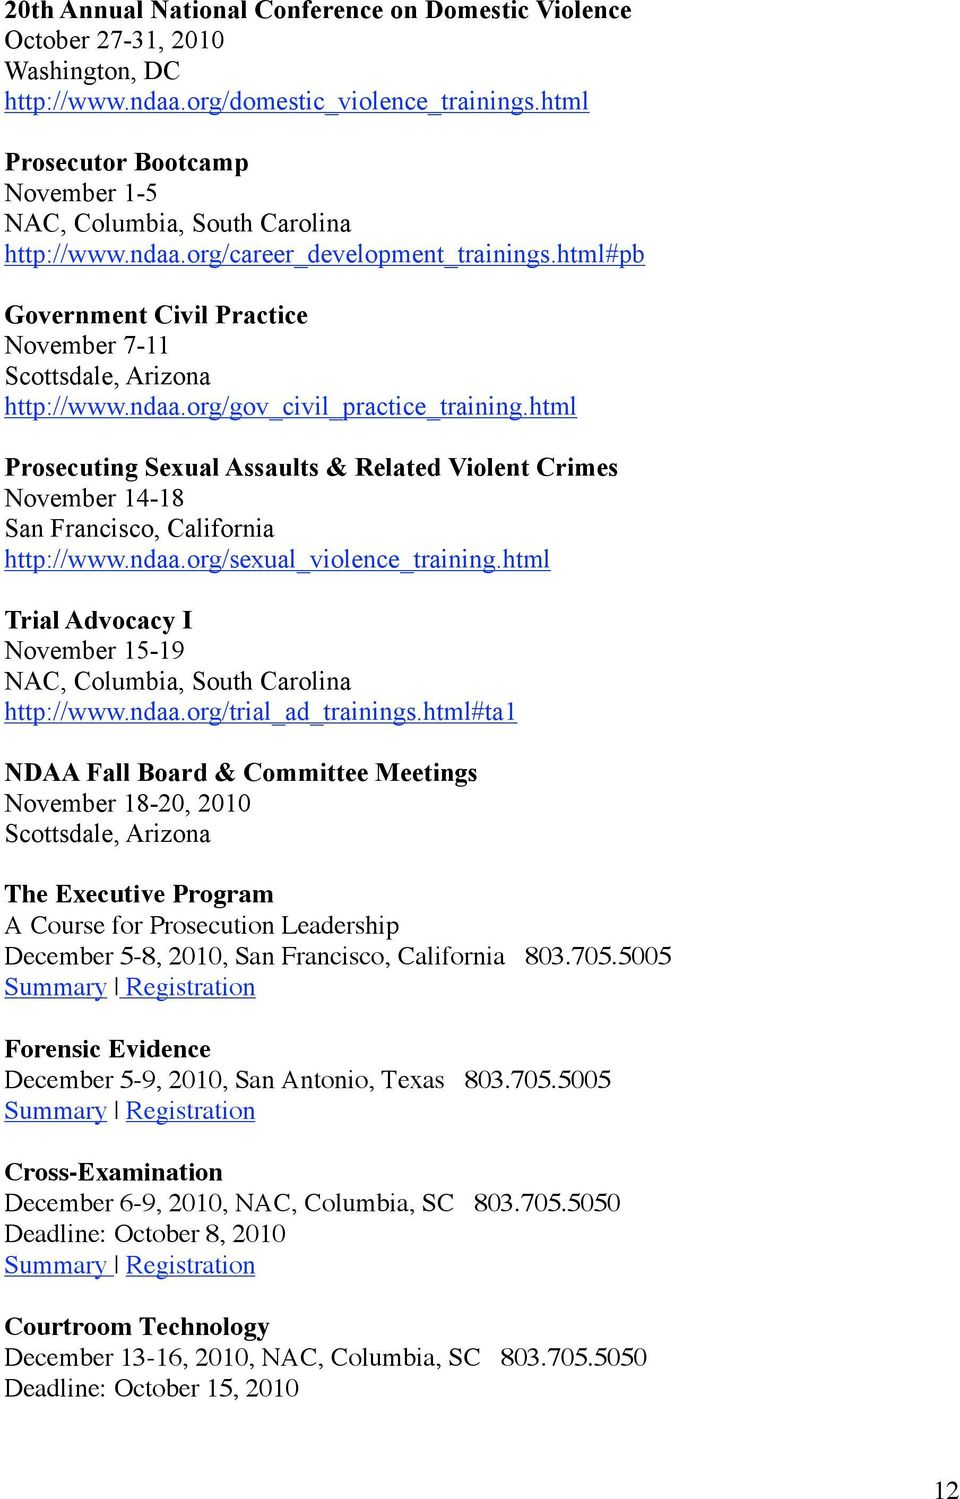 ndaa.org/gov_civil_practice_training.html Prosecuting Sexual Assaults & Related Violent Crimes November 14-18 San Francisco, California http://www.ndaa.org/sexual_violence_training.